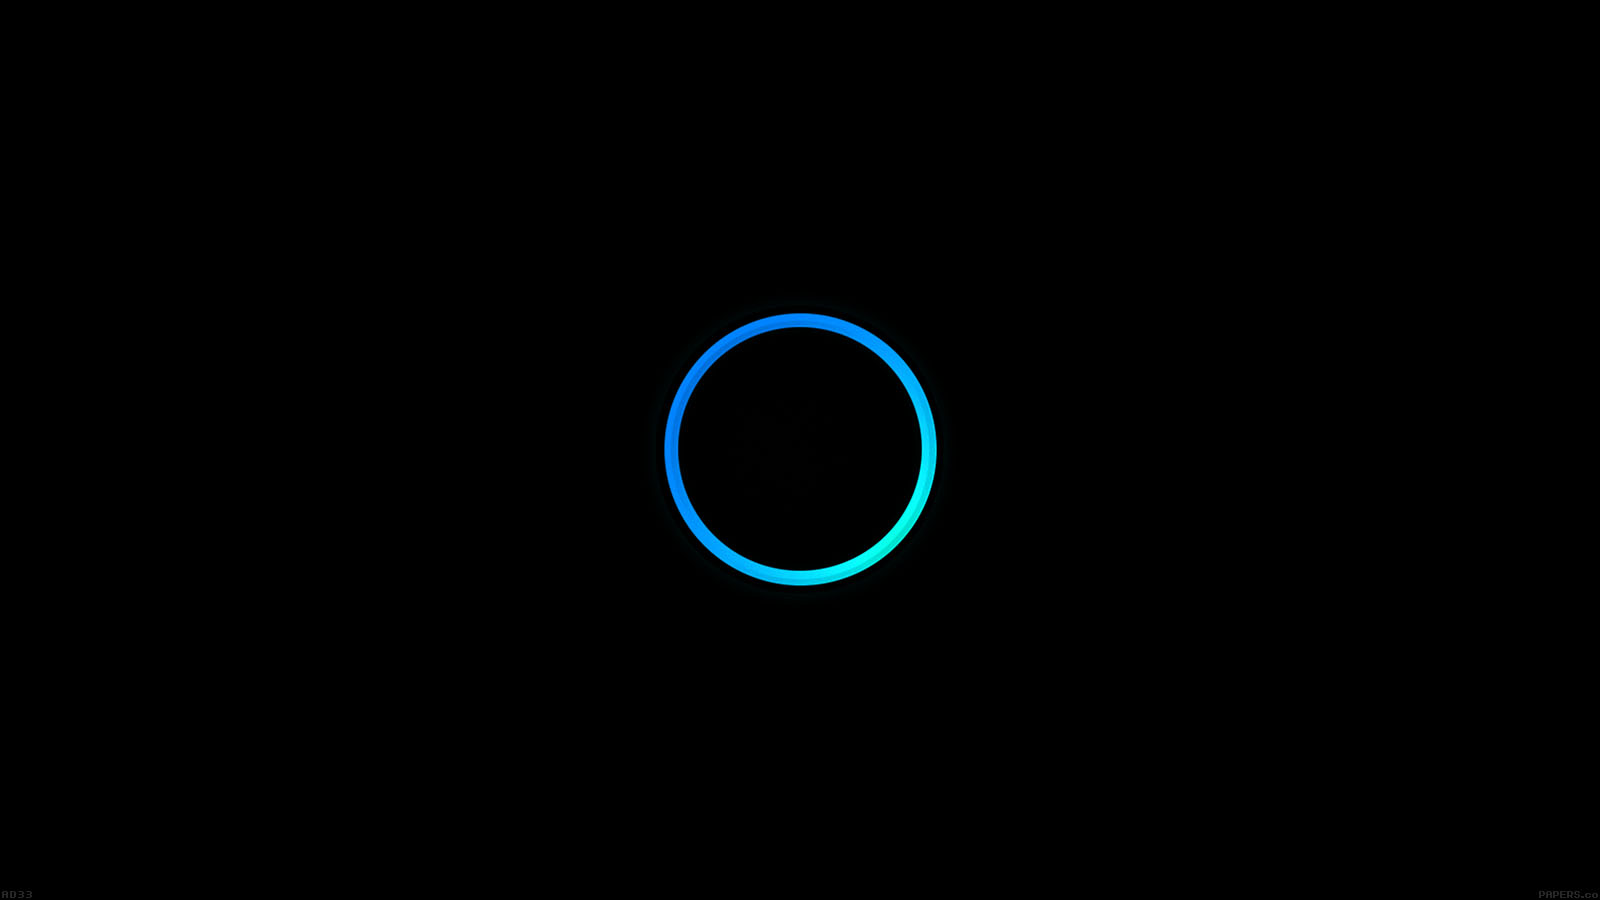 Iphone 6 Plus Fall Wallpaper Wallpaper For Desktop Laptop Ad33 One Circle Omni Blue